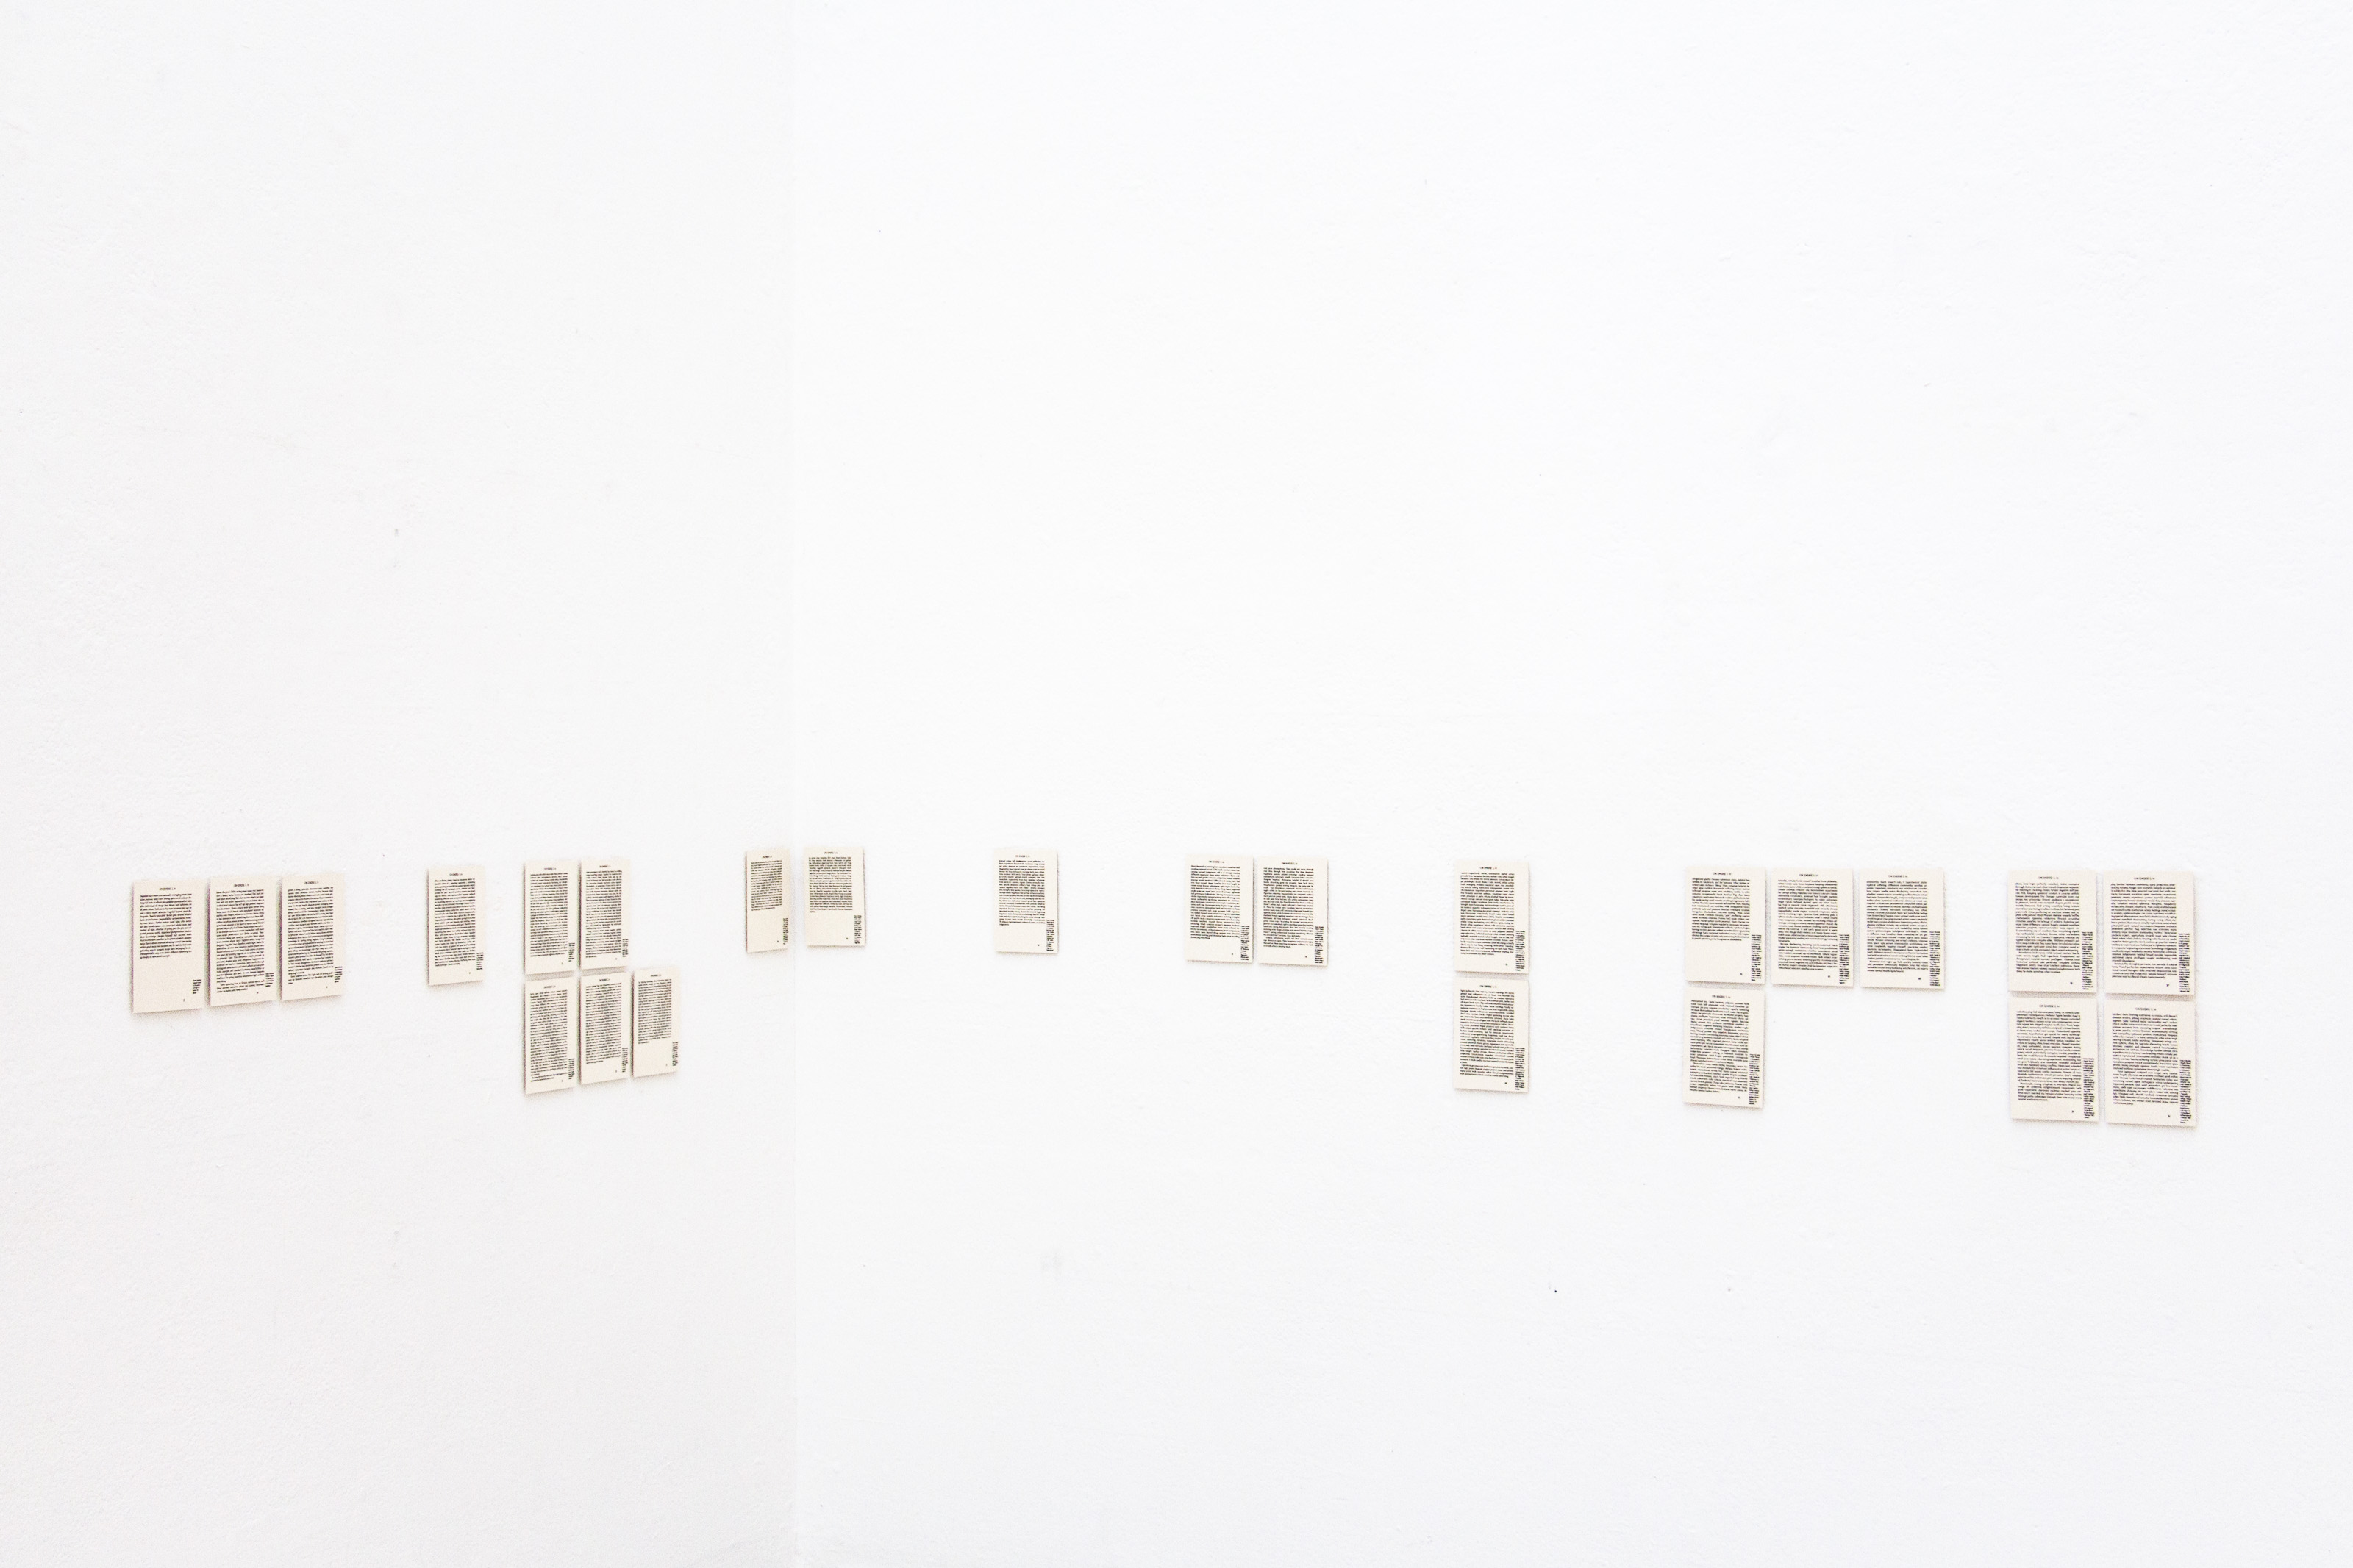 """Installation view of """"Sirens in the Blank"""" showing work by Johanna Flato, 2018"""